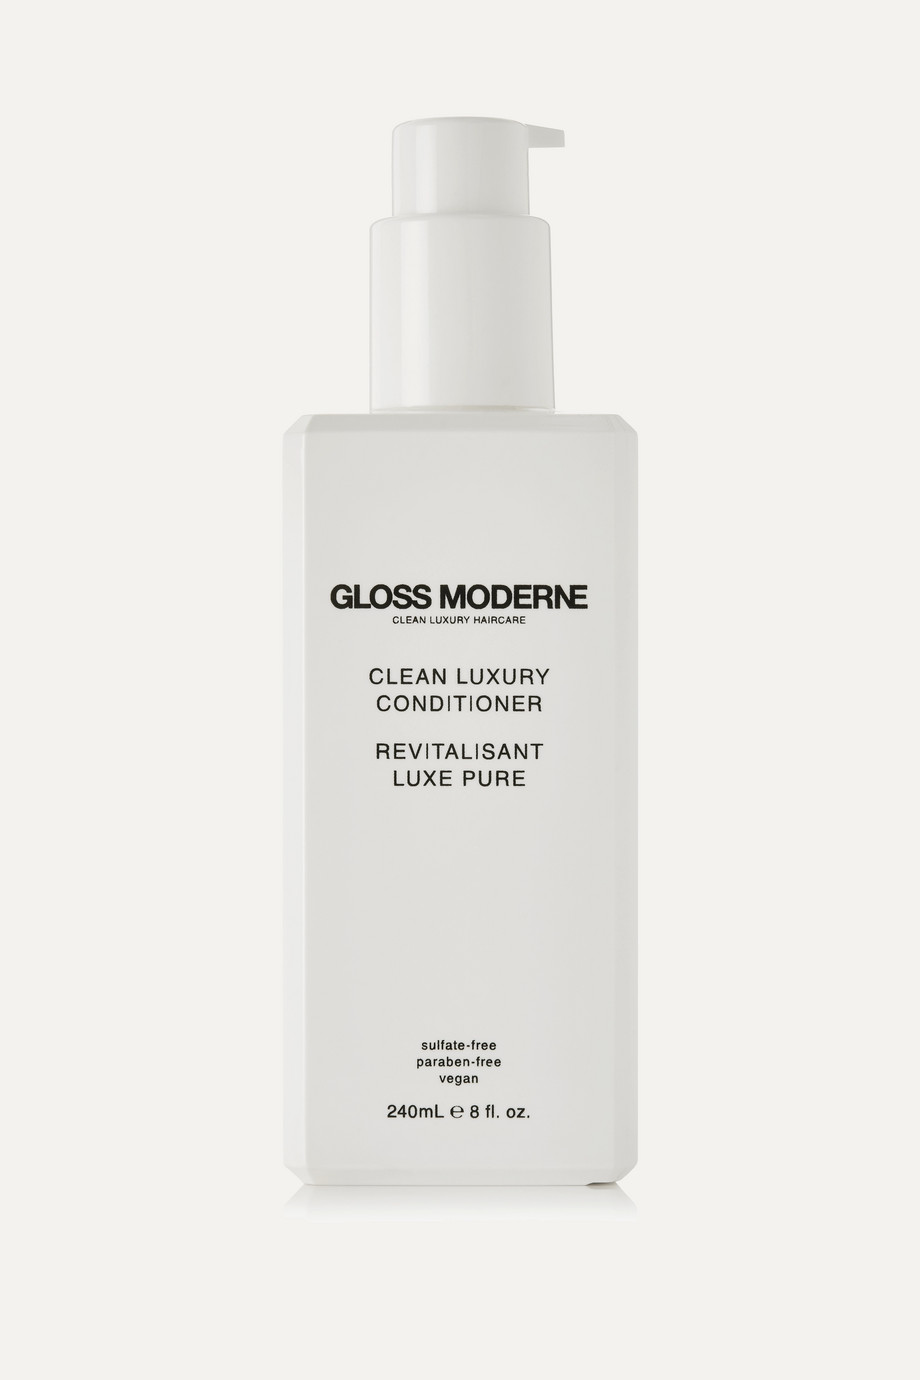 Gloss Moderne Clean Luxury Conditioner, 240ml